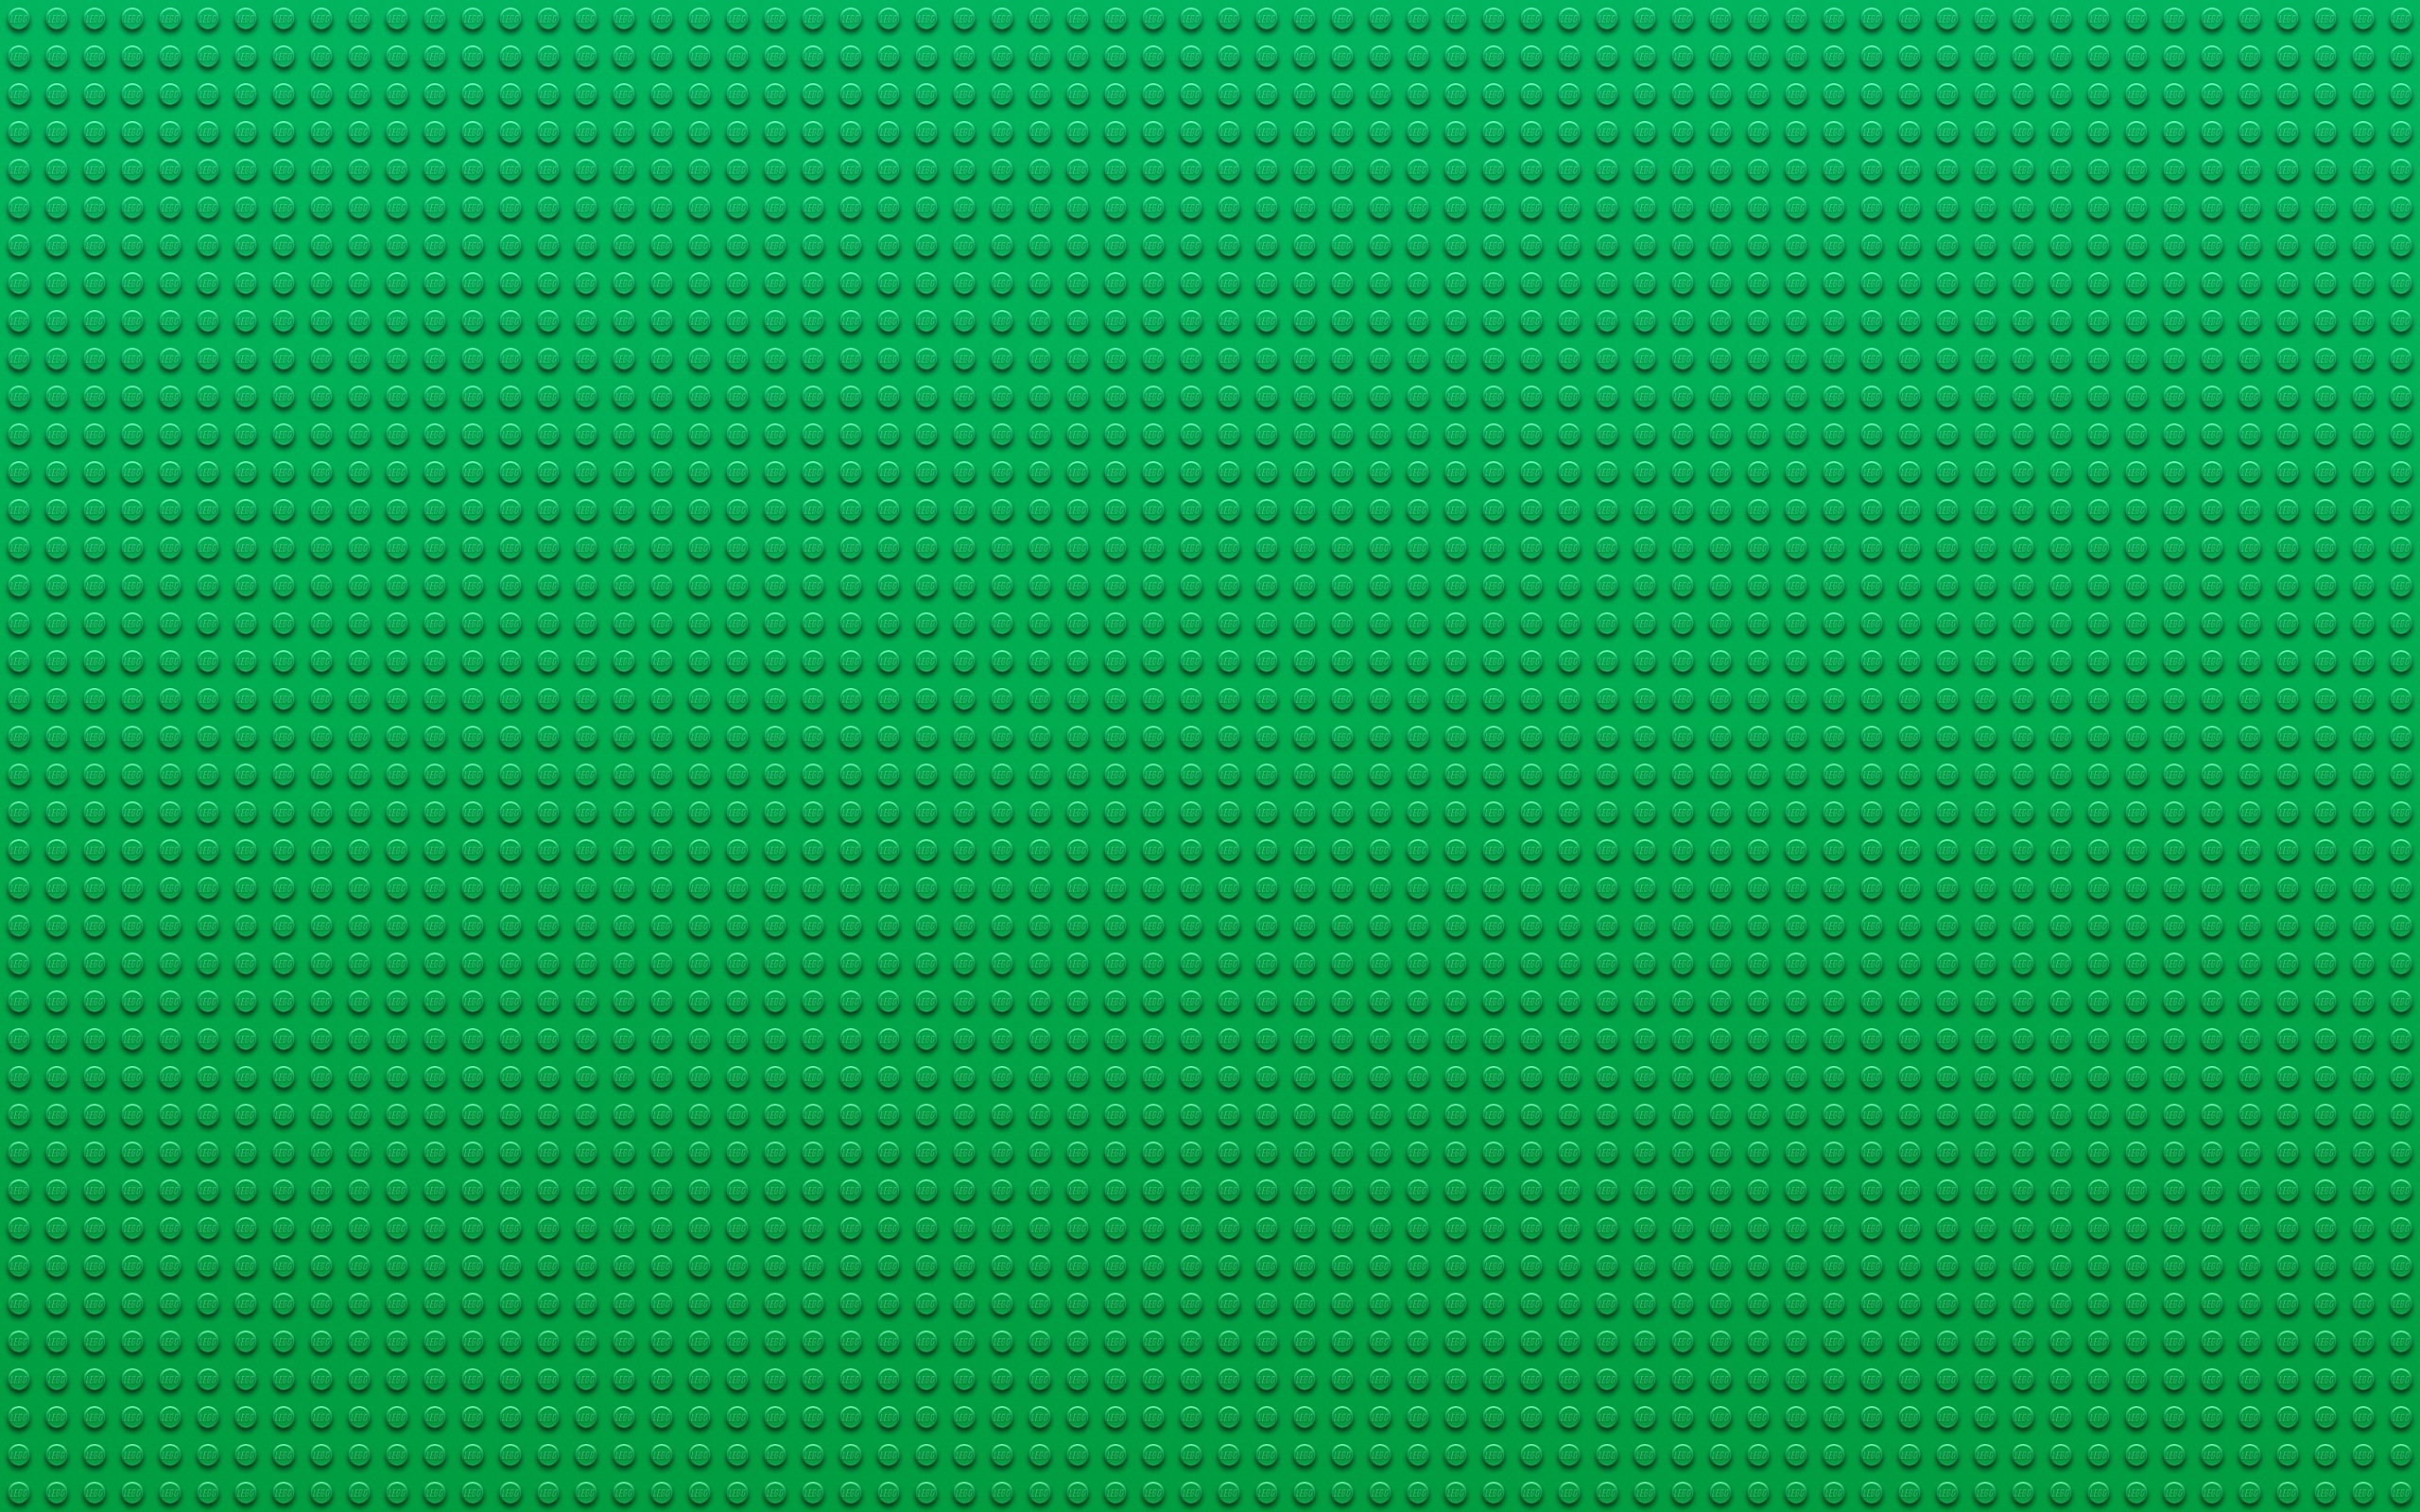 2560x1600 Green Lego Wallpaper  Green, Lego, Textures, Dots